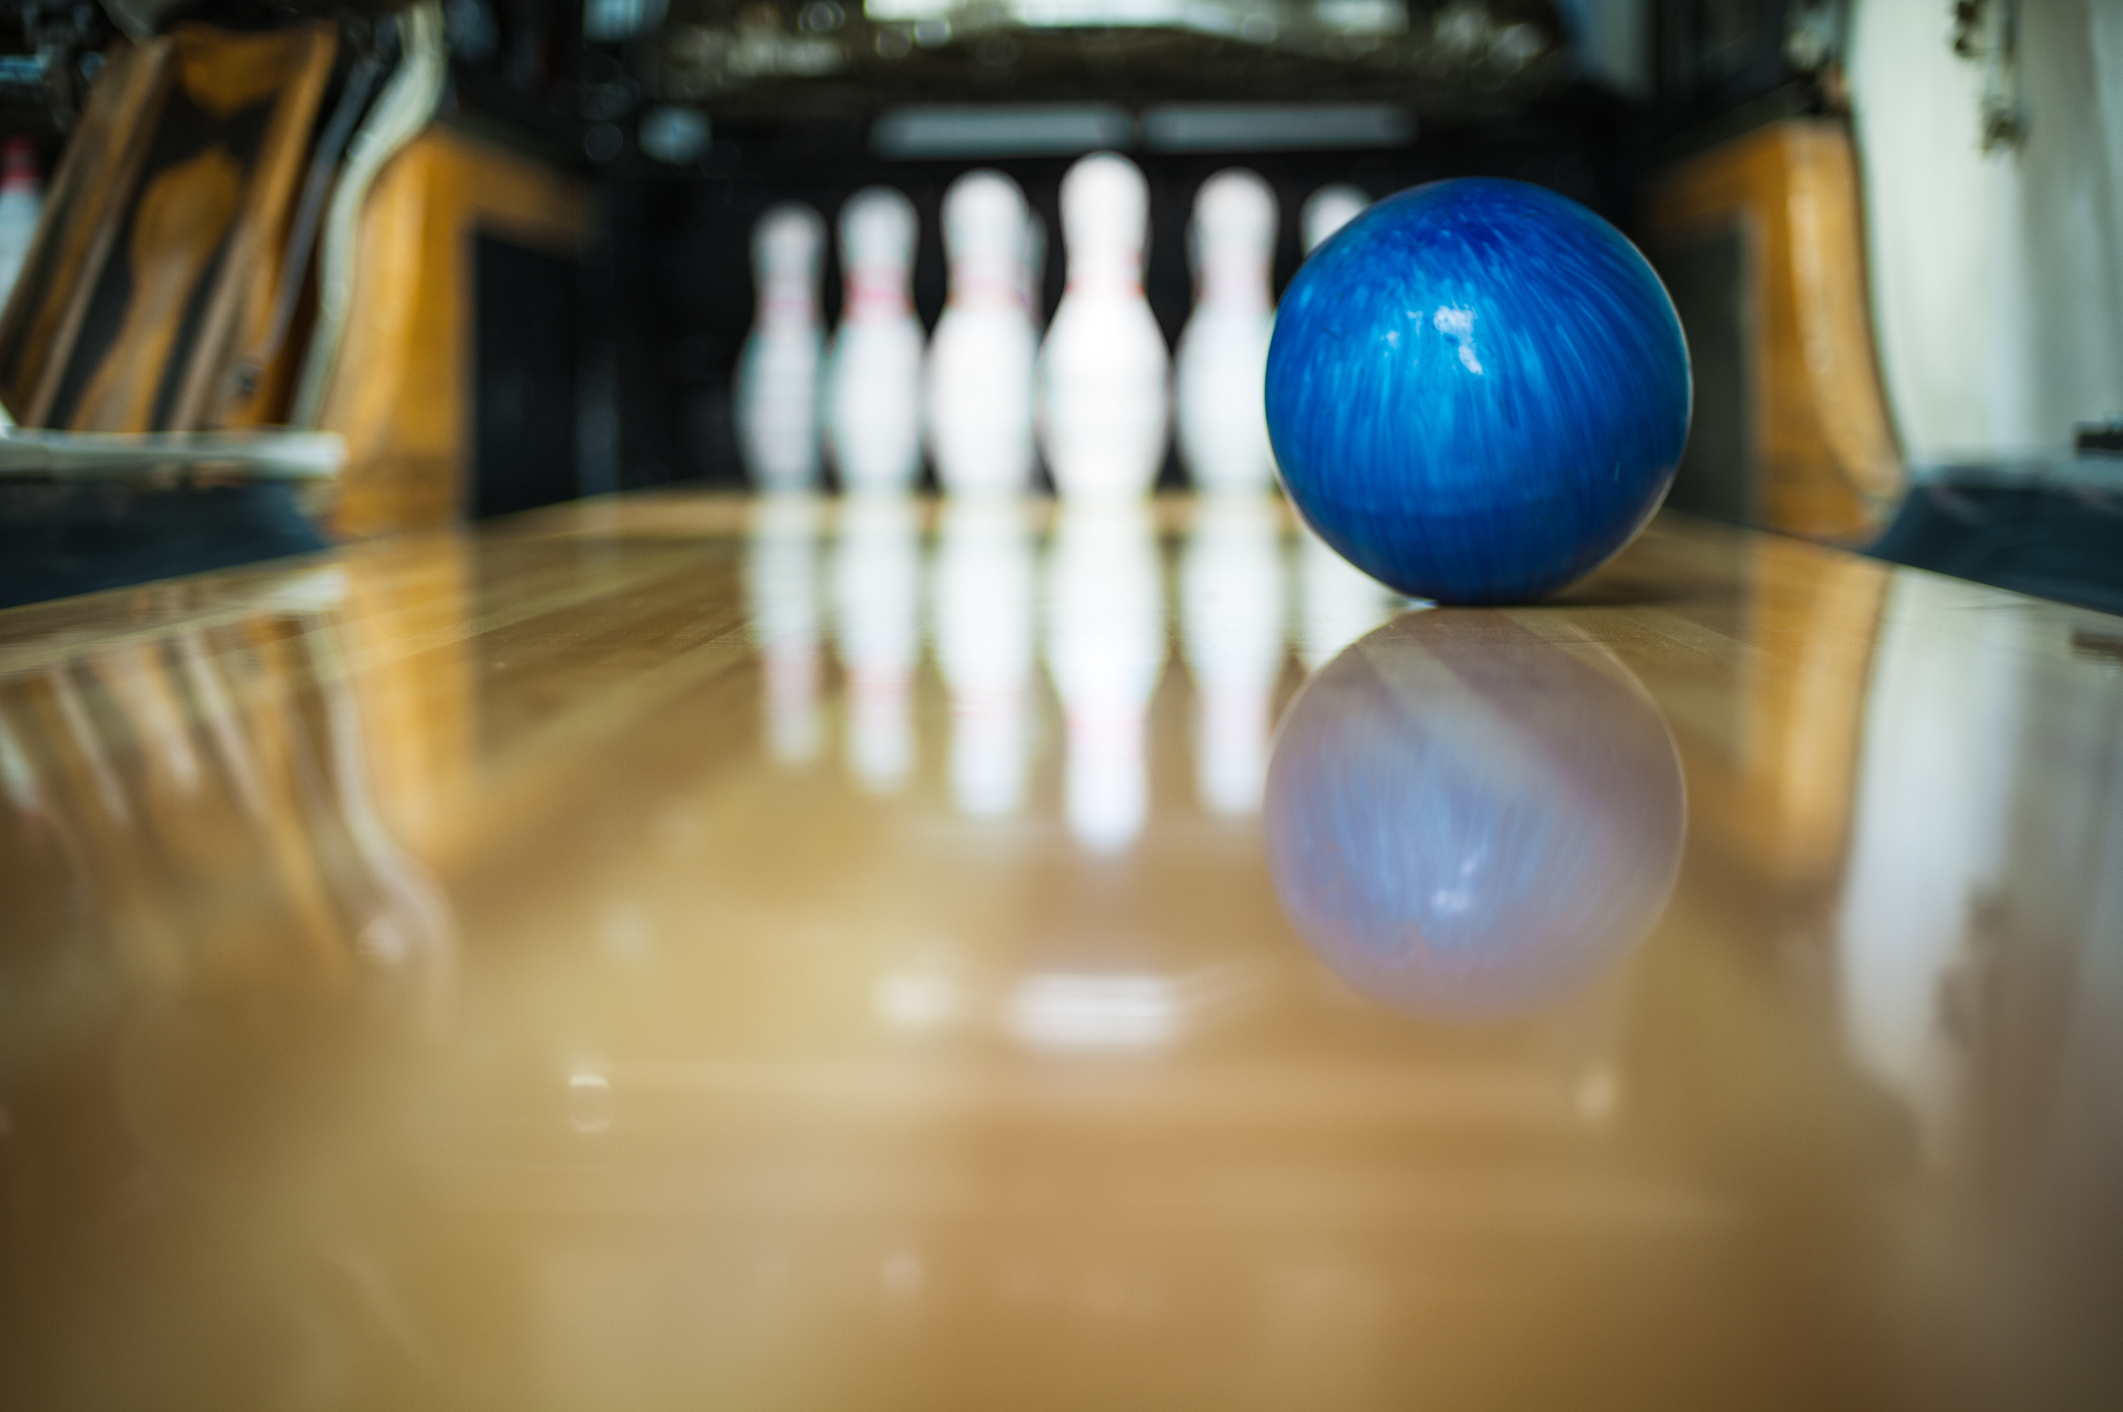 Strike!  Bowling + Life Parallels. By Mary Ann DiLorenzo